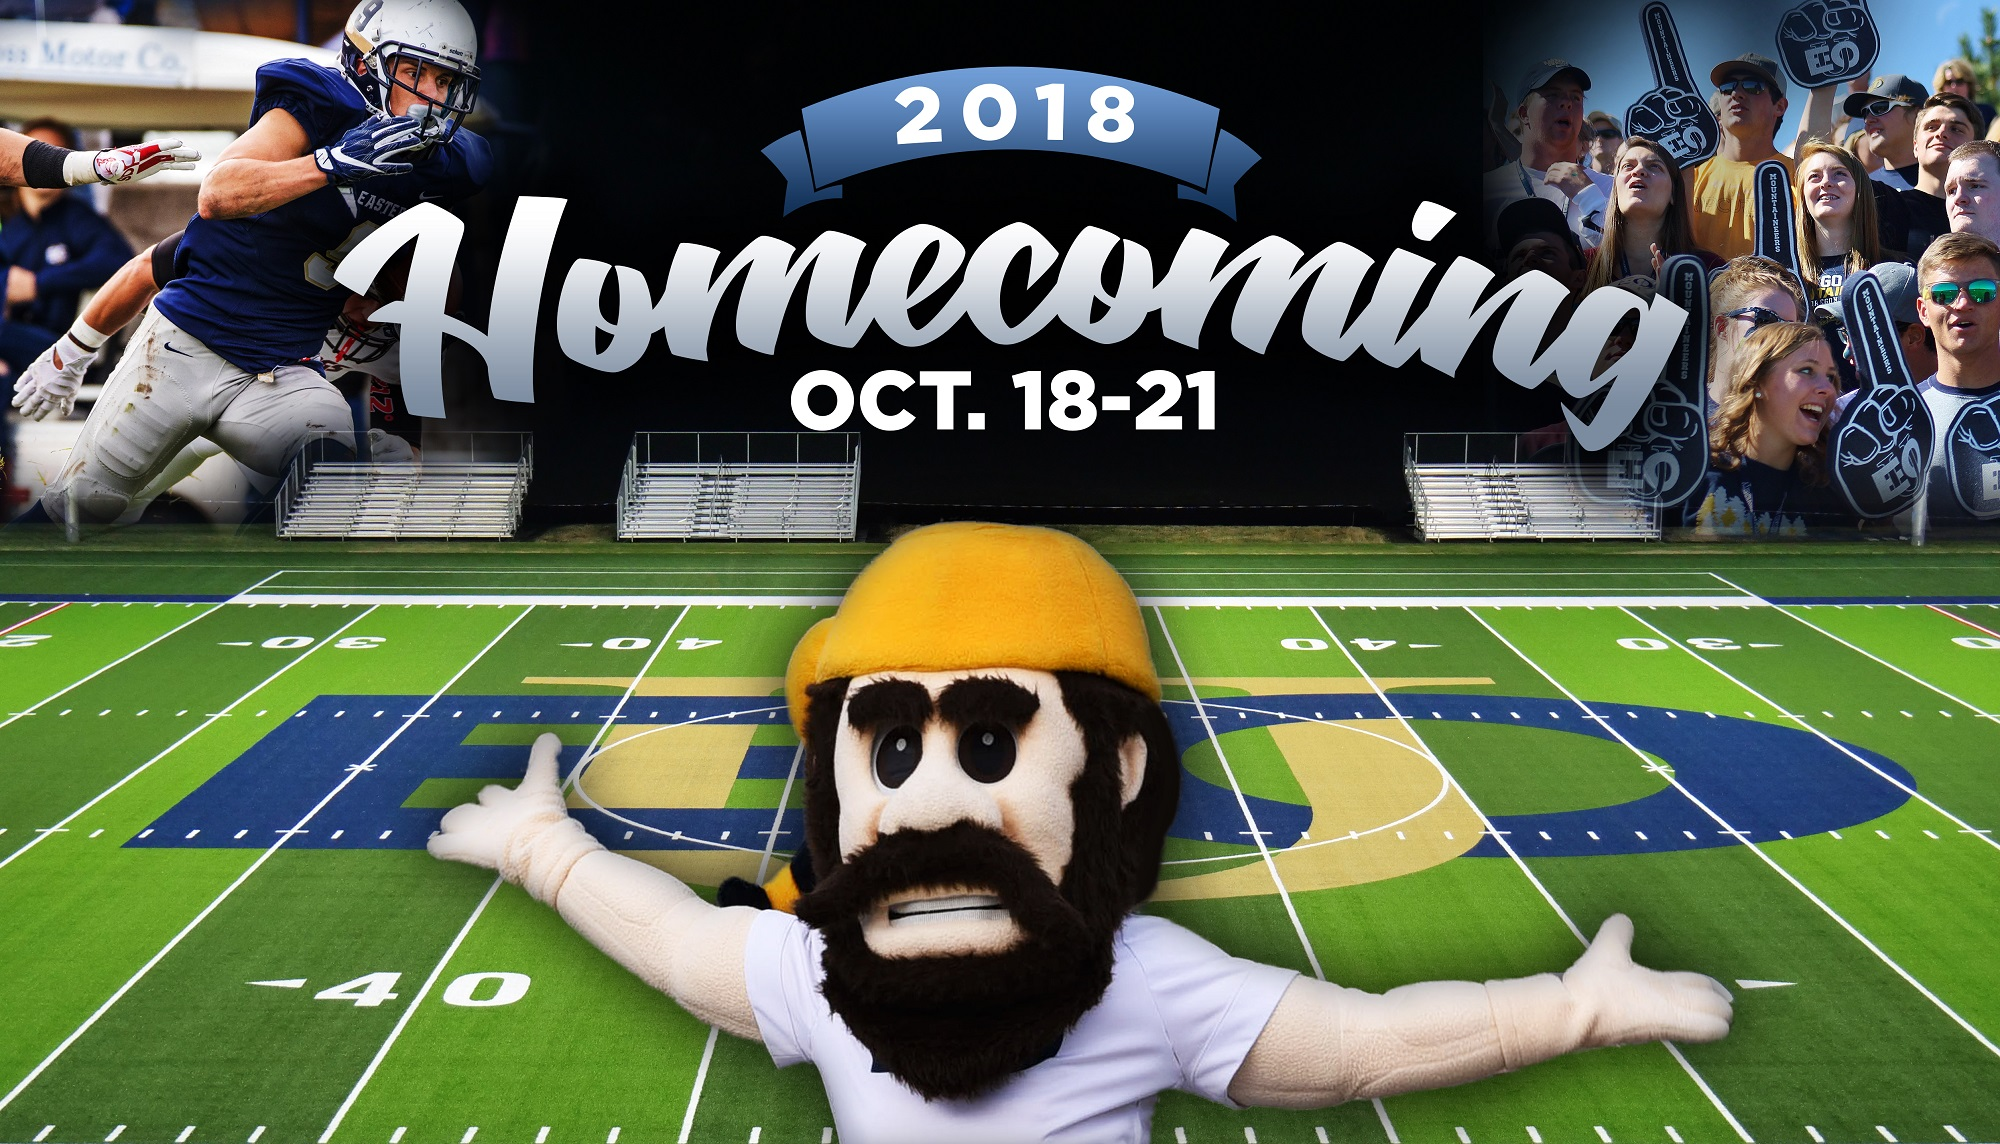 homecoming graphic_final crop